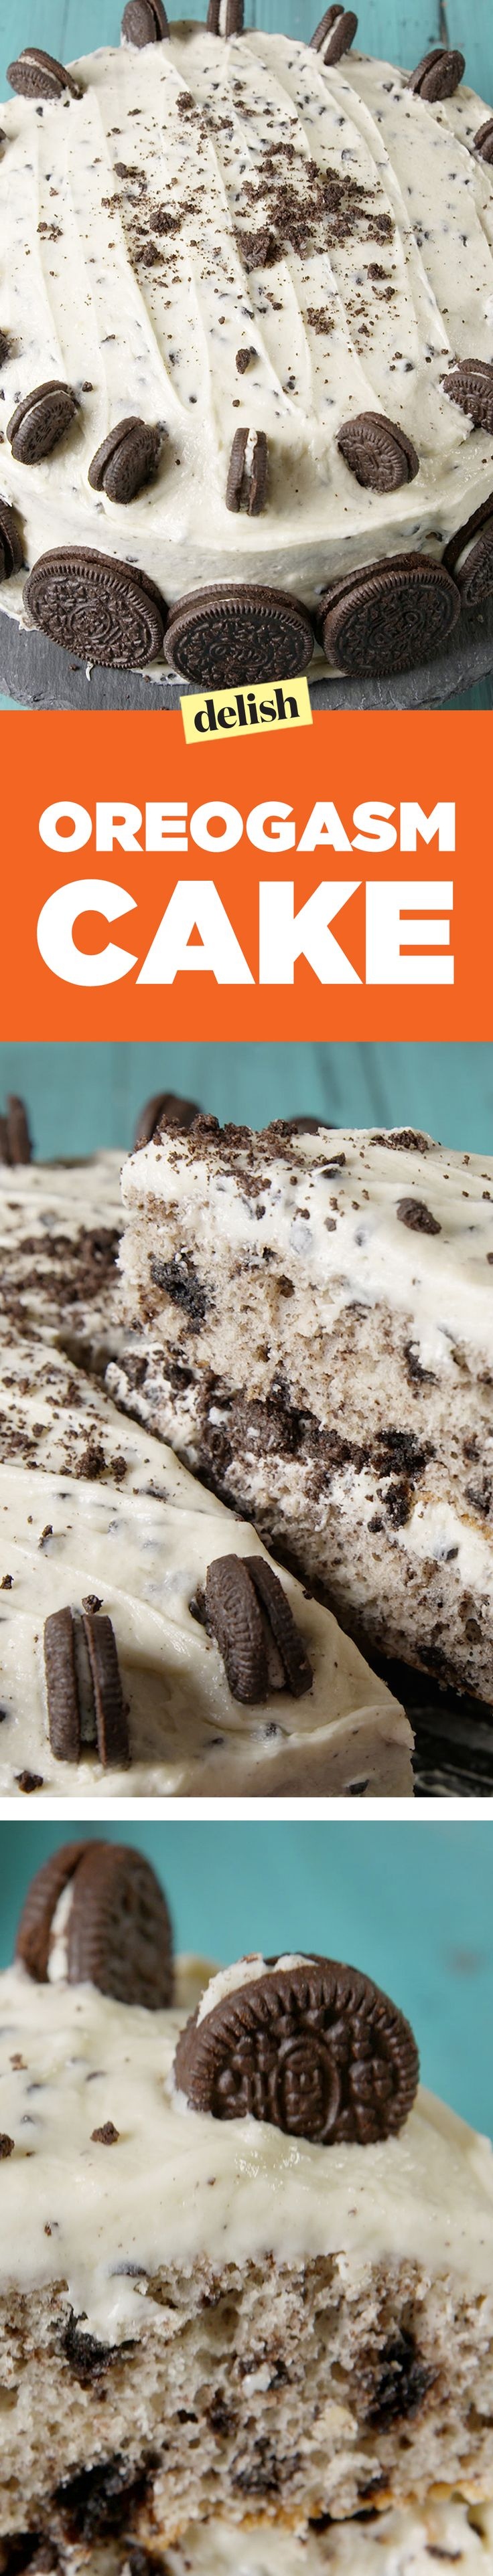 Oreogasm cake takes cookies n' cream to the next level. Get the recipe on Delish.com.